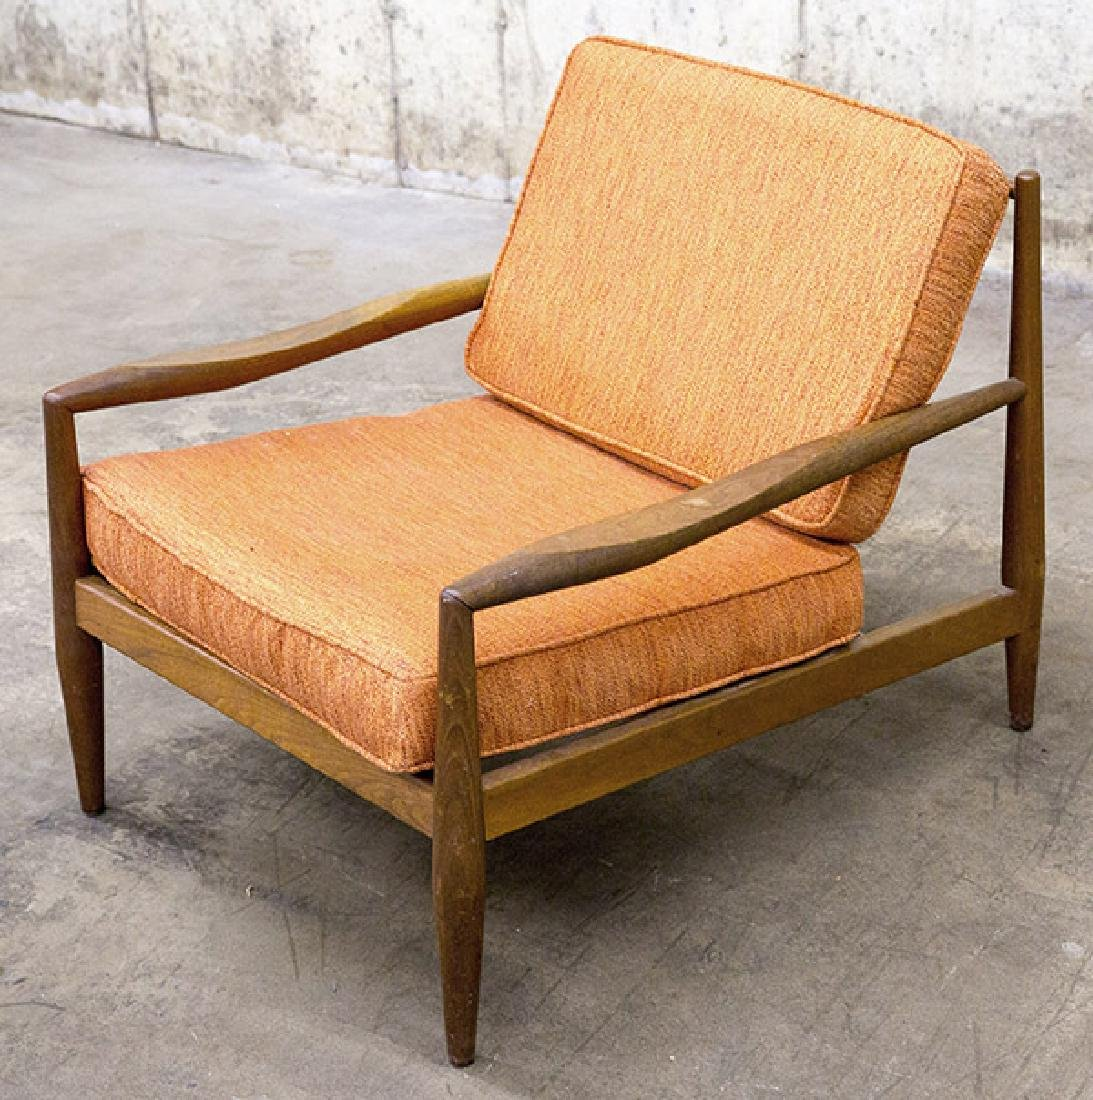 A- Adrian Pearsall Lounge Chair, 1950's